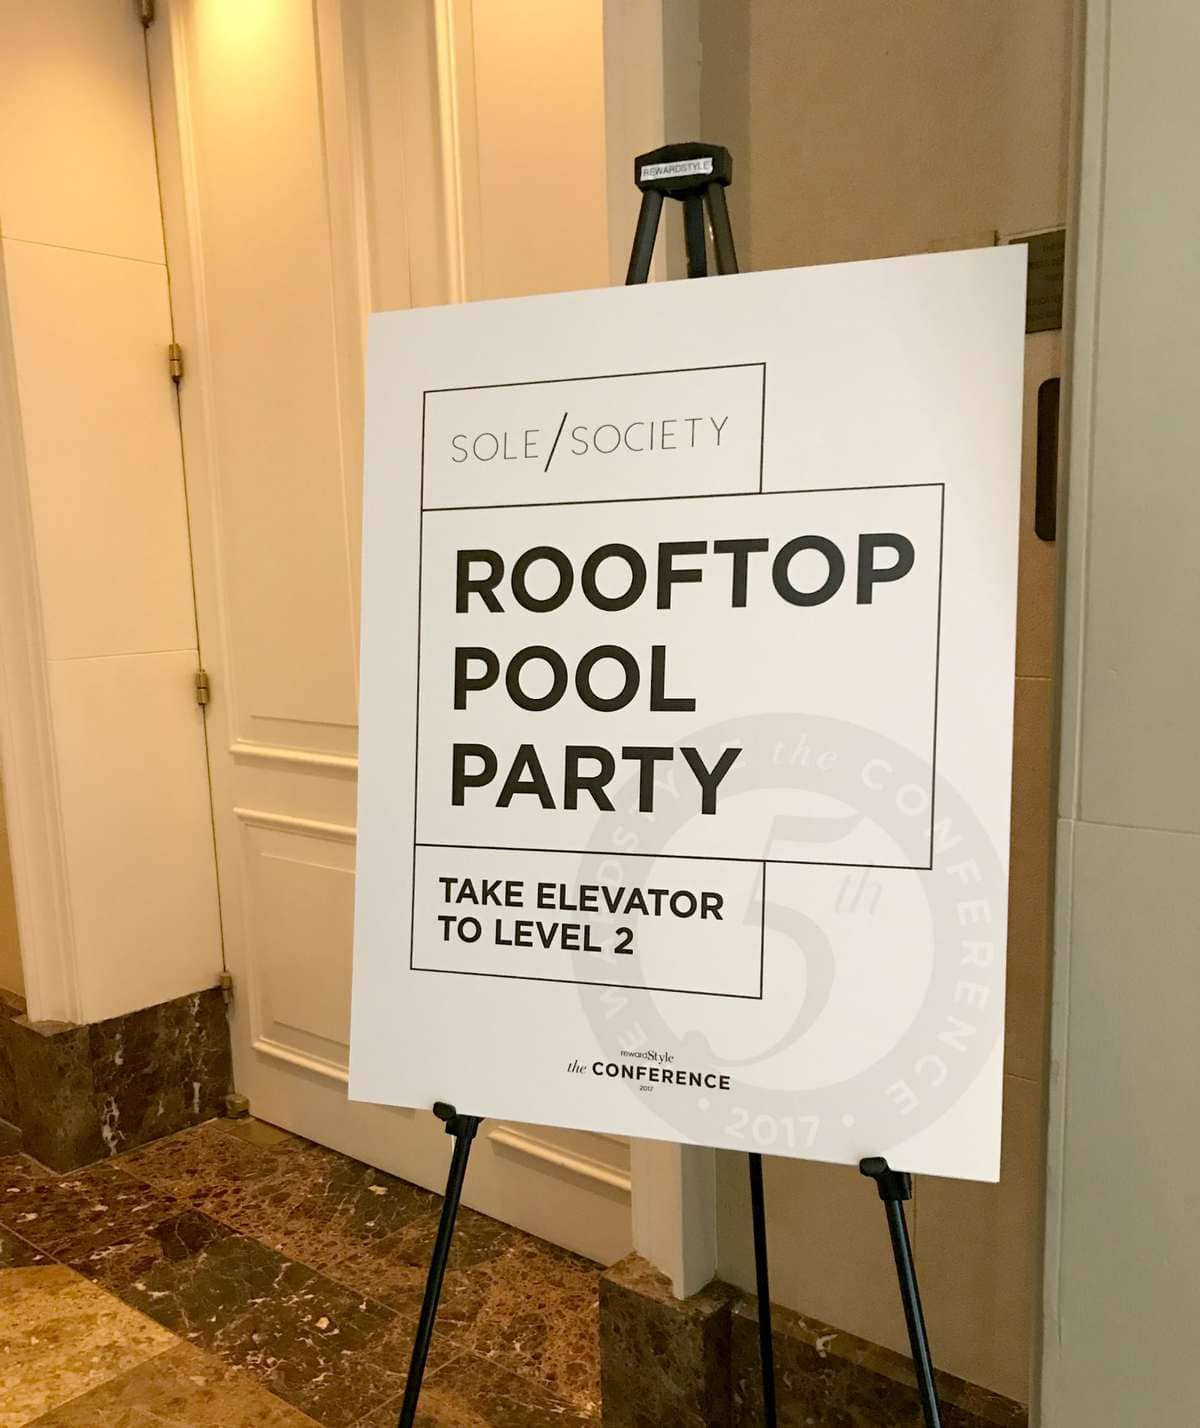 sole sociaety rooftop pool party rsthecon rewardstyle conference 2017